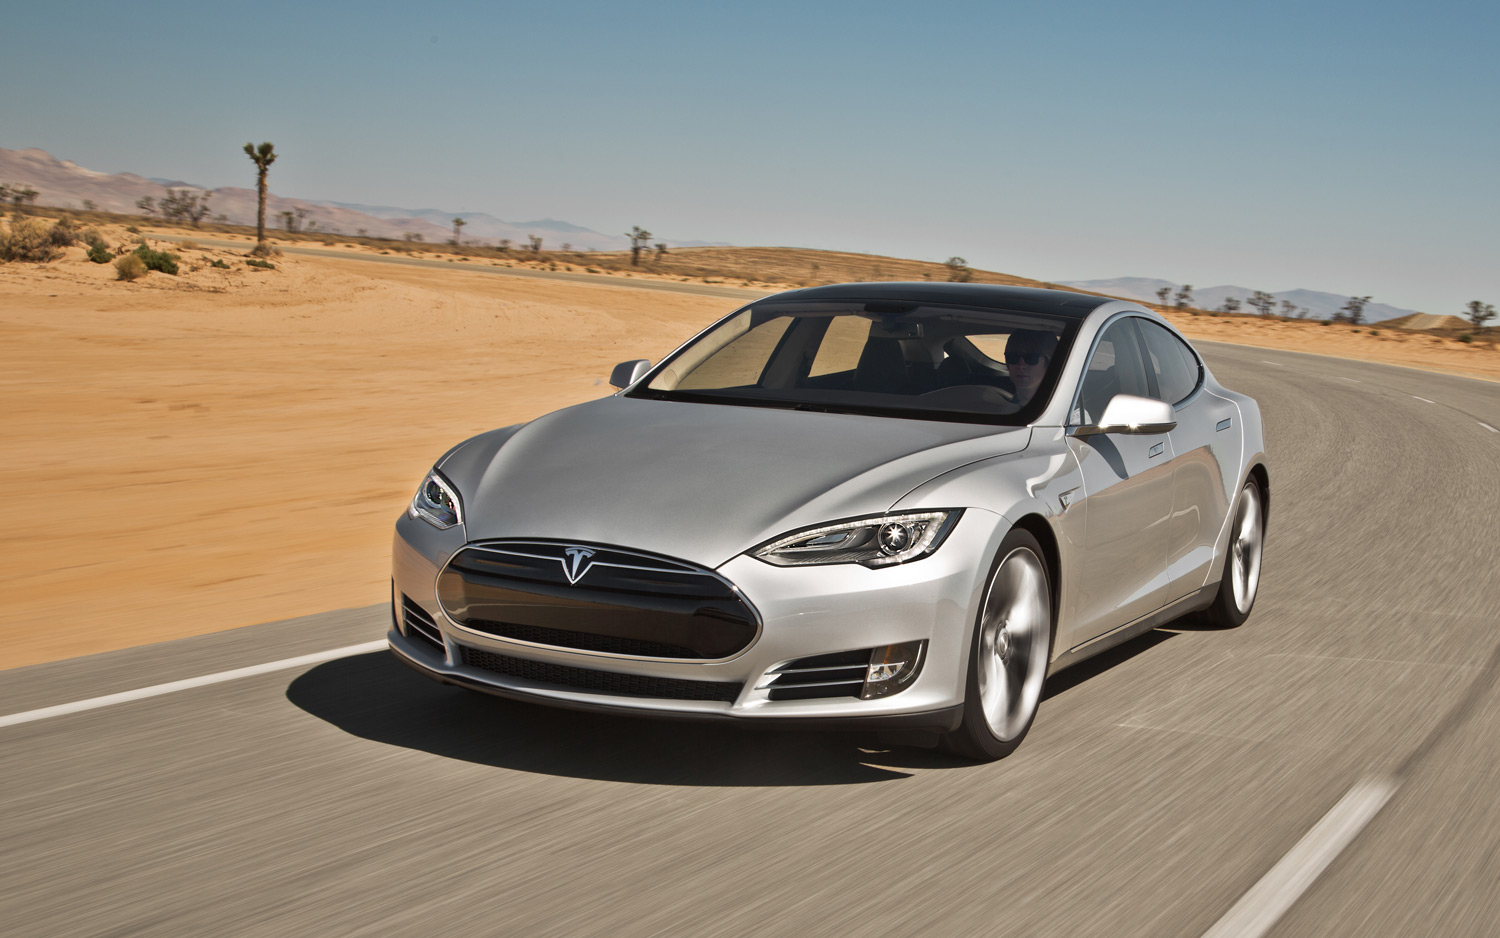 2013 Tesla Model S P85  Long-Term Update 2 - Motor Trend